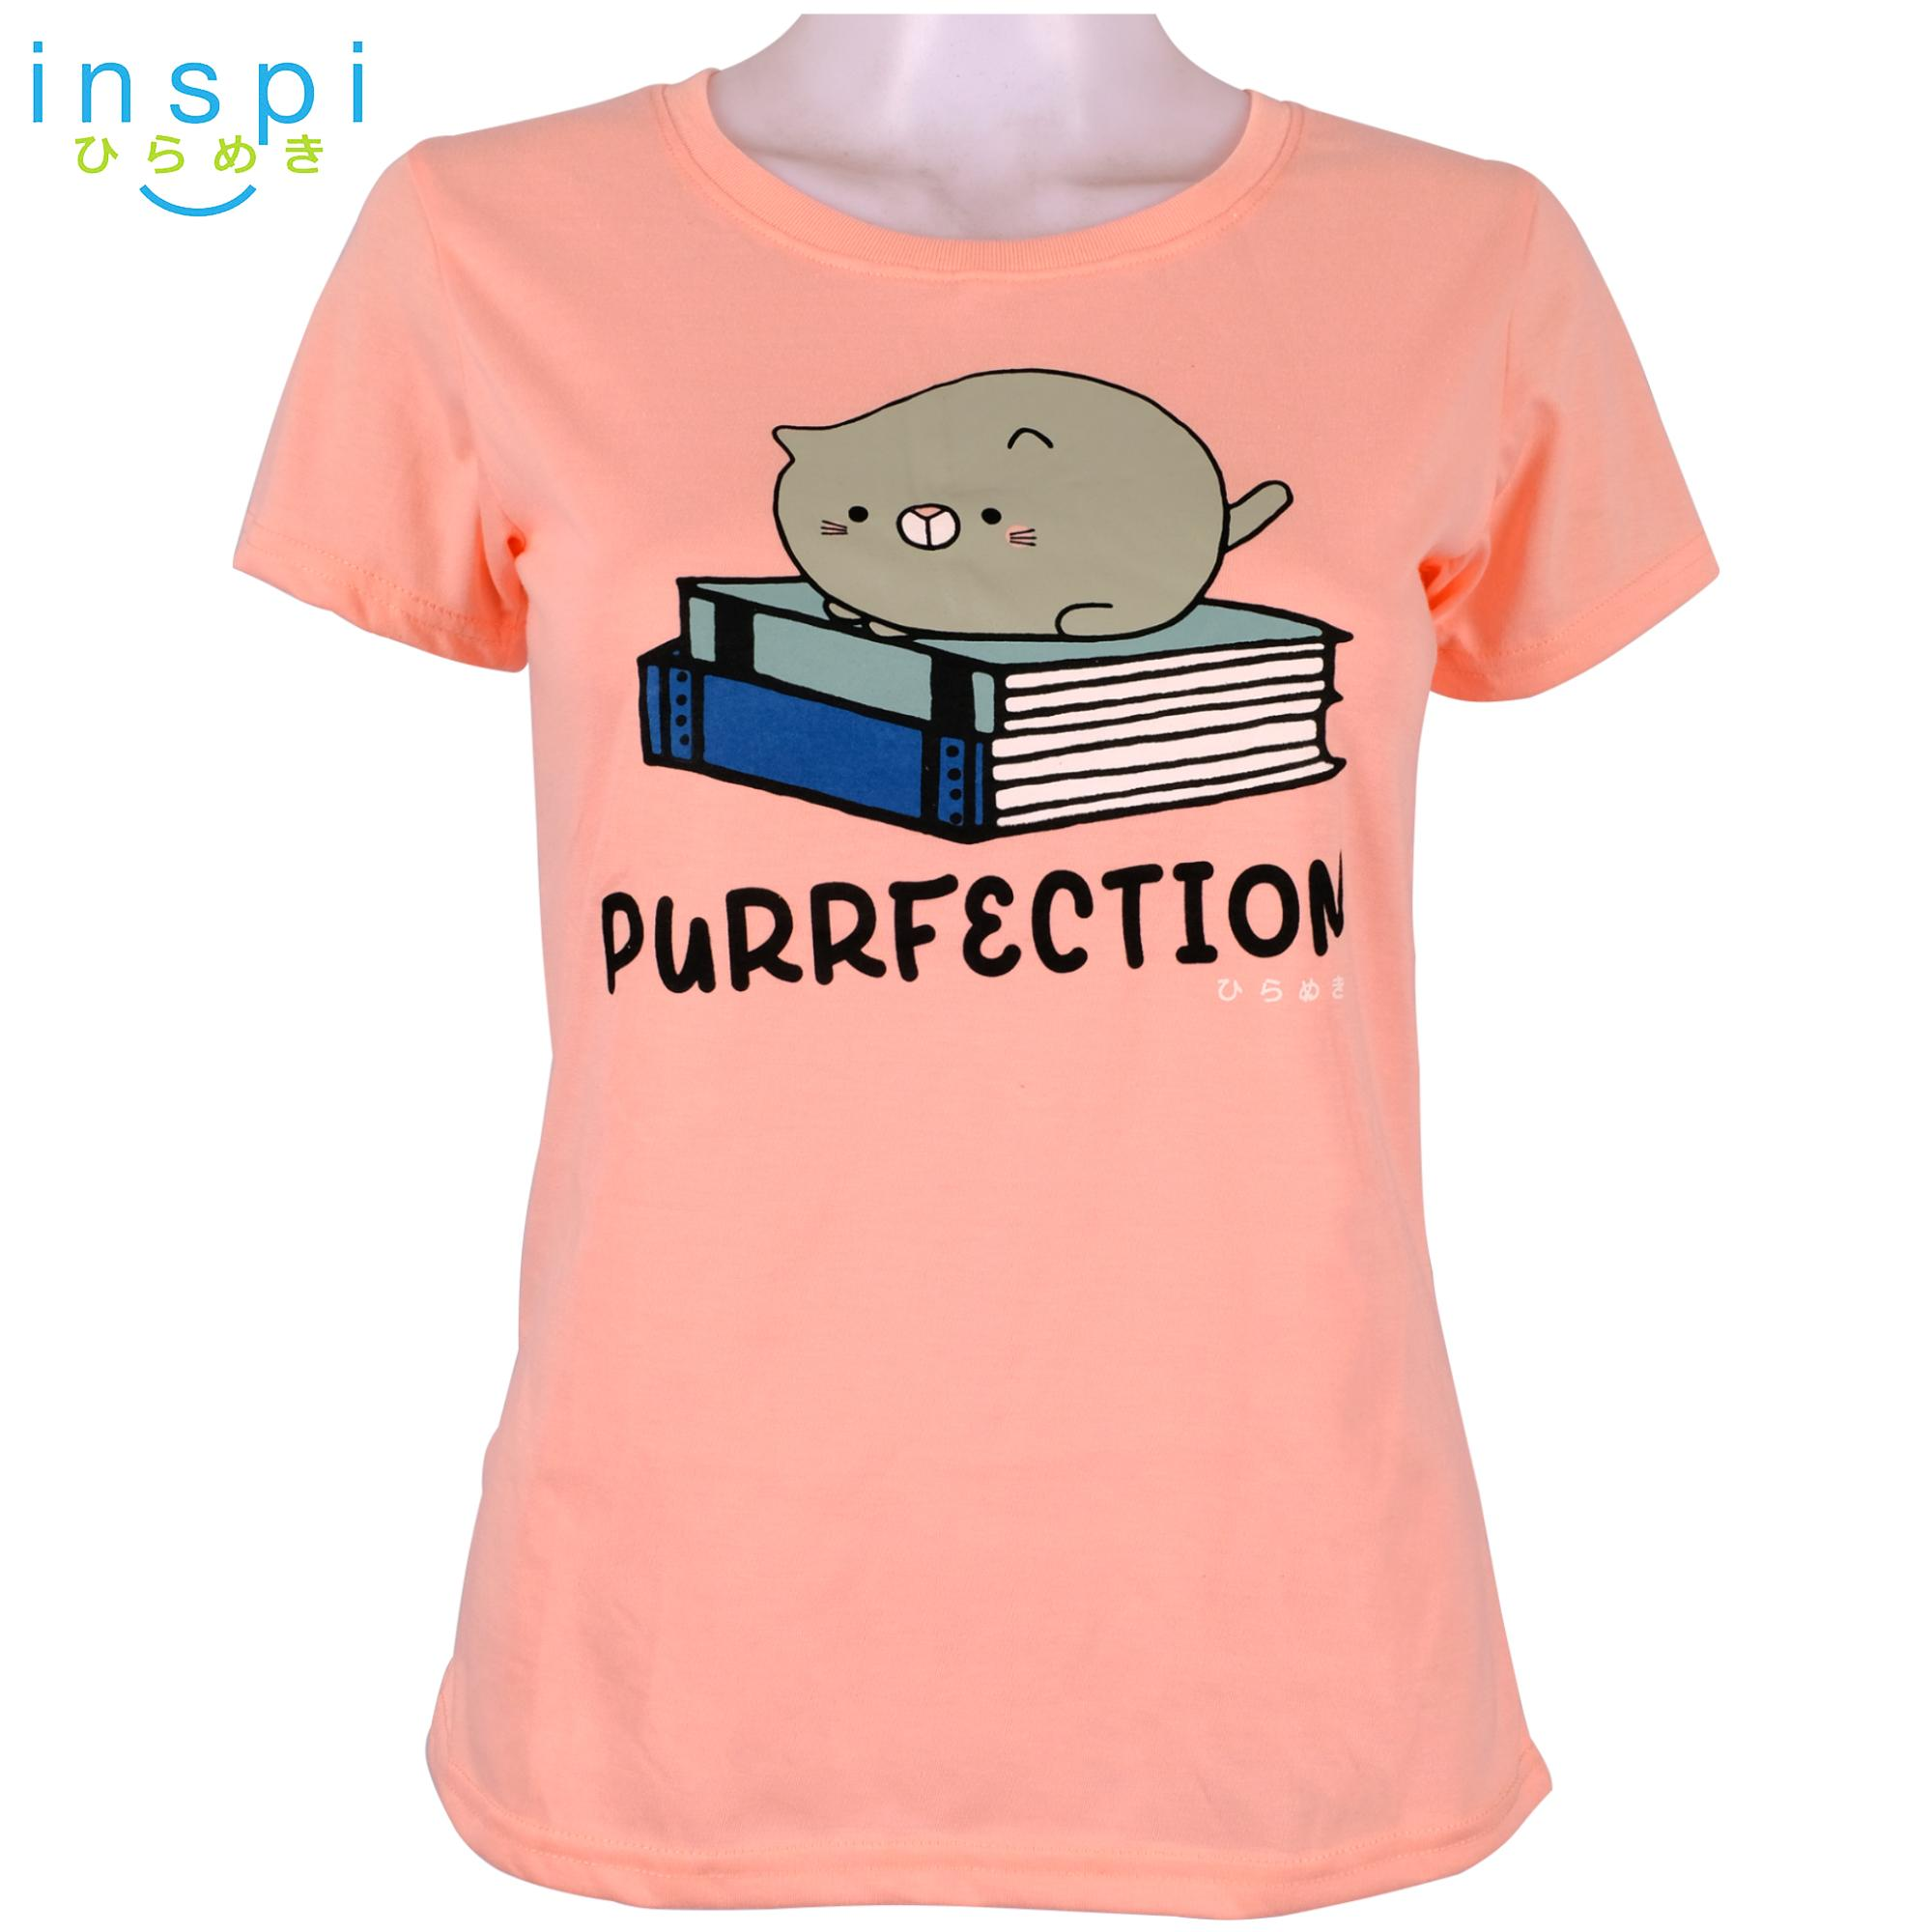 1b645541142 INSPI Tees Ladies Loose Fit Purrfection (Dairy Peach) tshirt printed  graphic tee t shirt